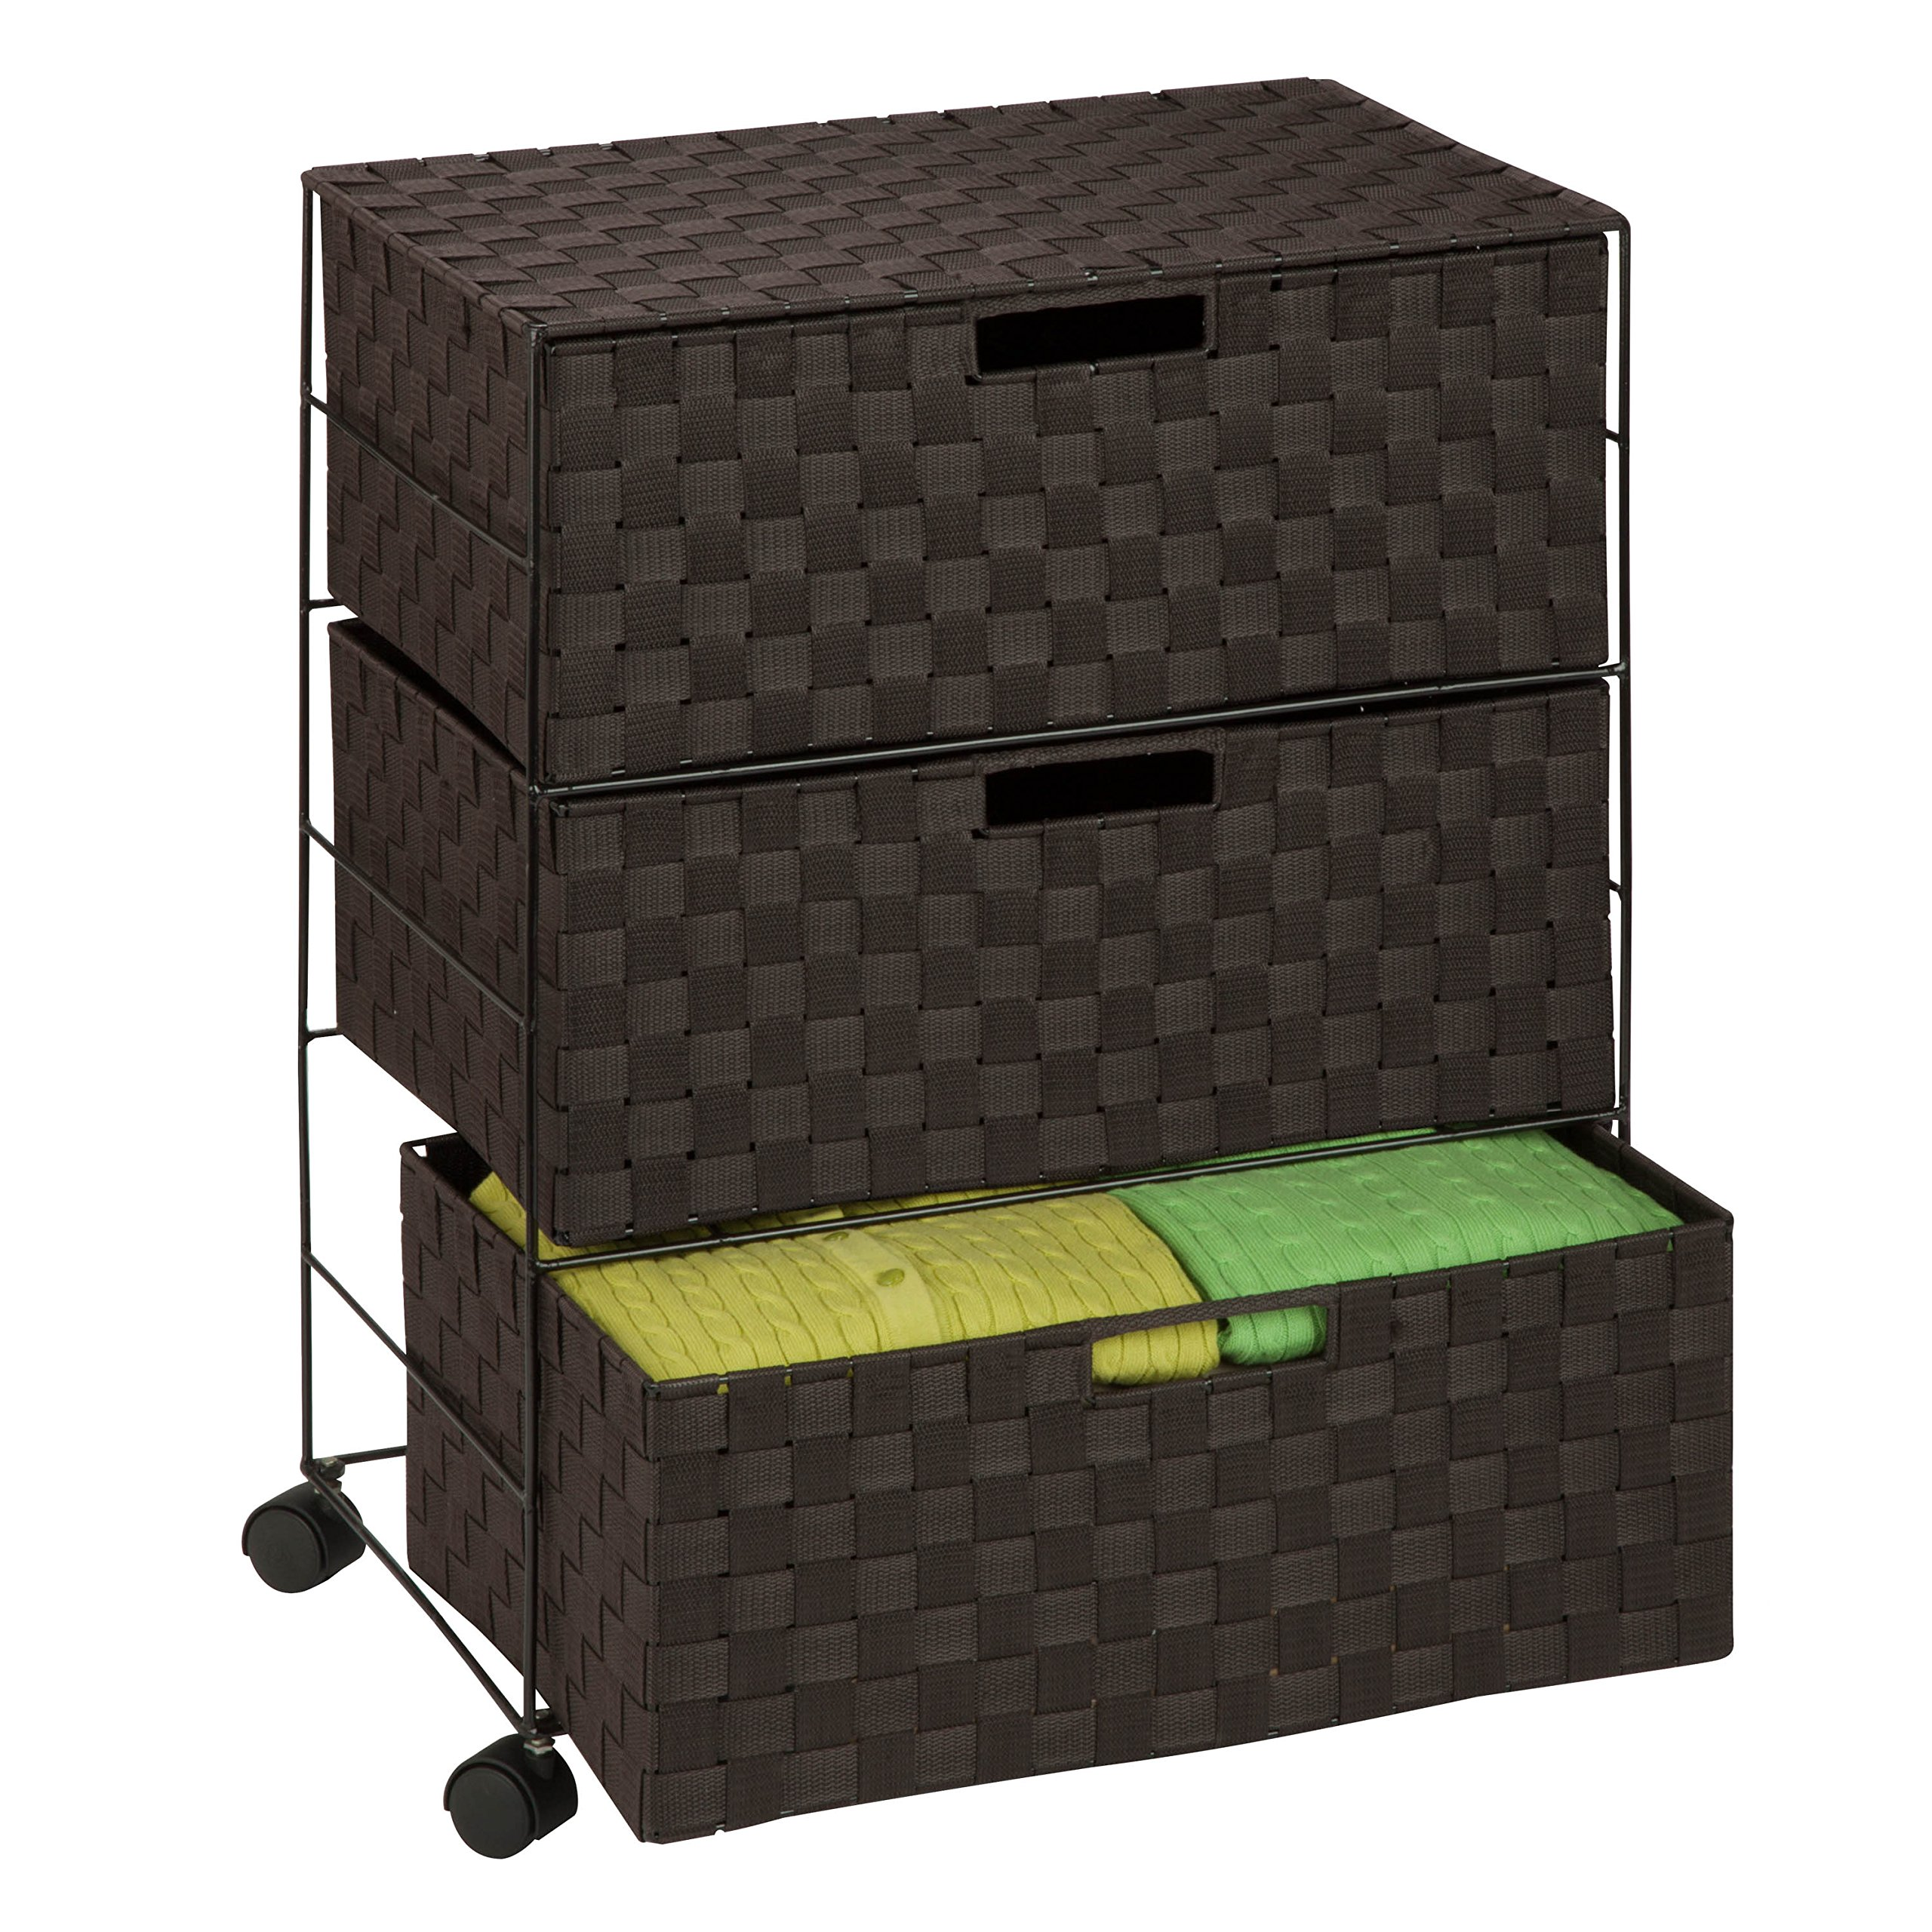 Honey-Can-Do OFC-03713 Double Woven 3-Drawer Chest Storage Organizer, Espresso Brown, 19.5L x 13W x 26H by Honey-Can-Do